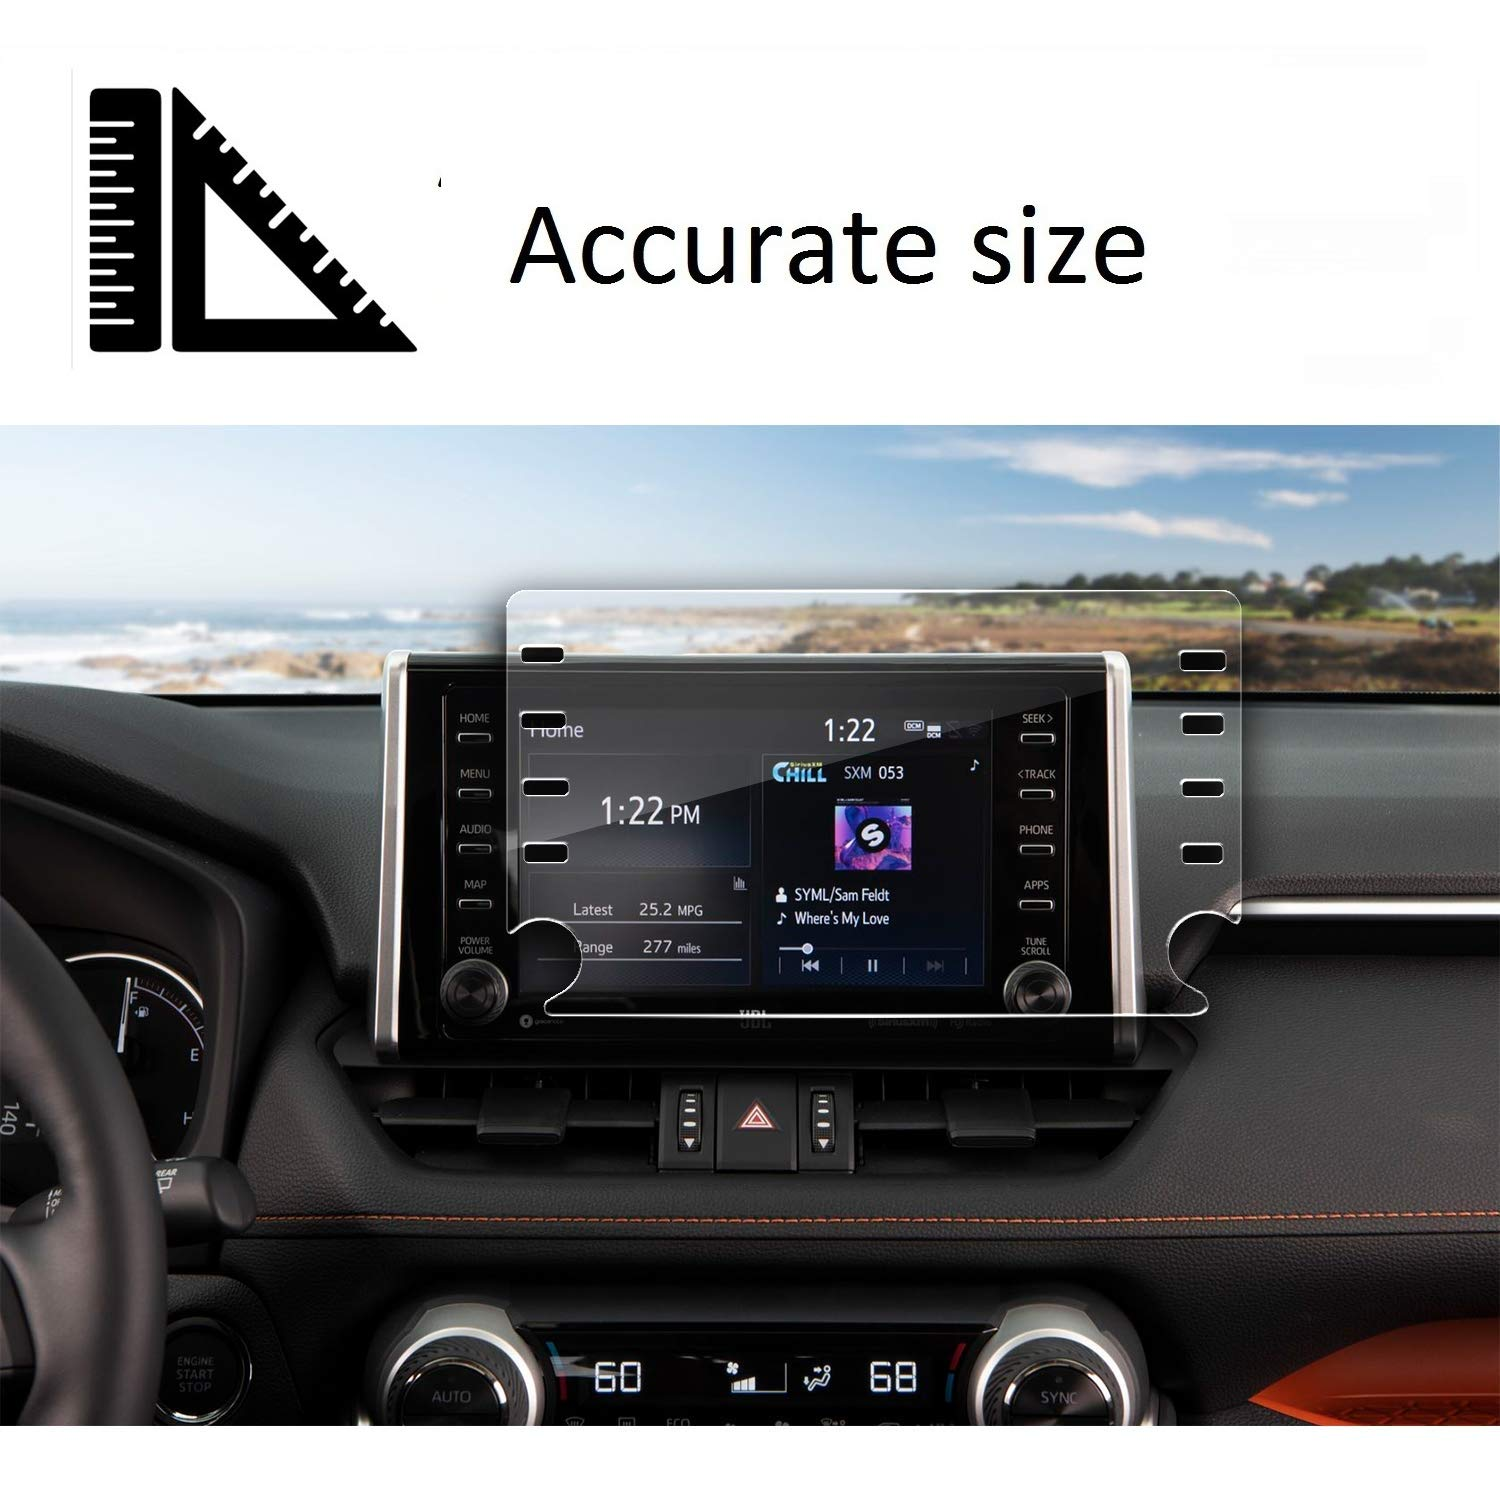 """ZFM Tempered Glass Screen Protector Compatible with Toyota C-HR 2019 2020,9H Hardness,High Definition,Protecting Toyota 8/"""" Car Center Touch Screen"""